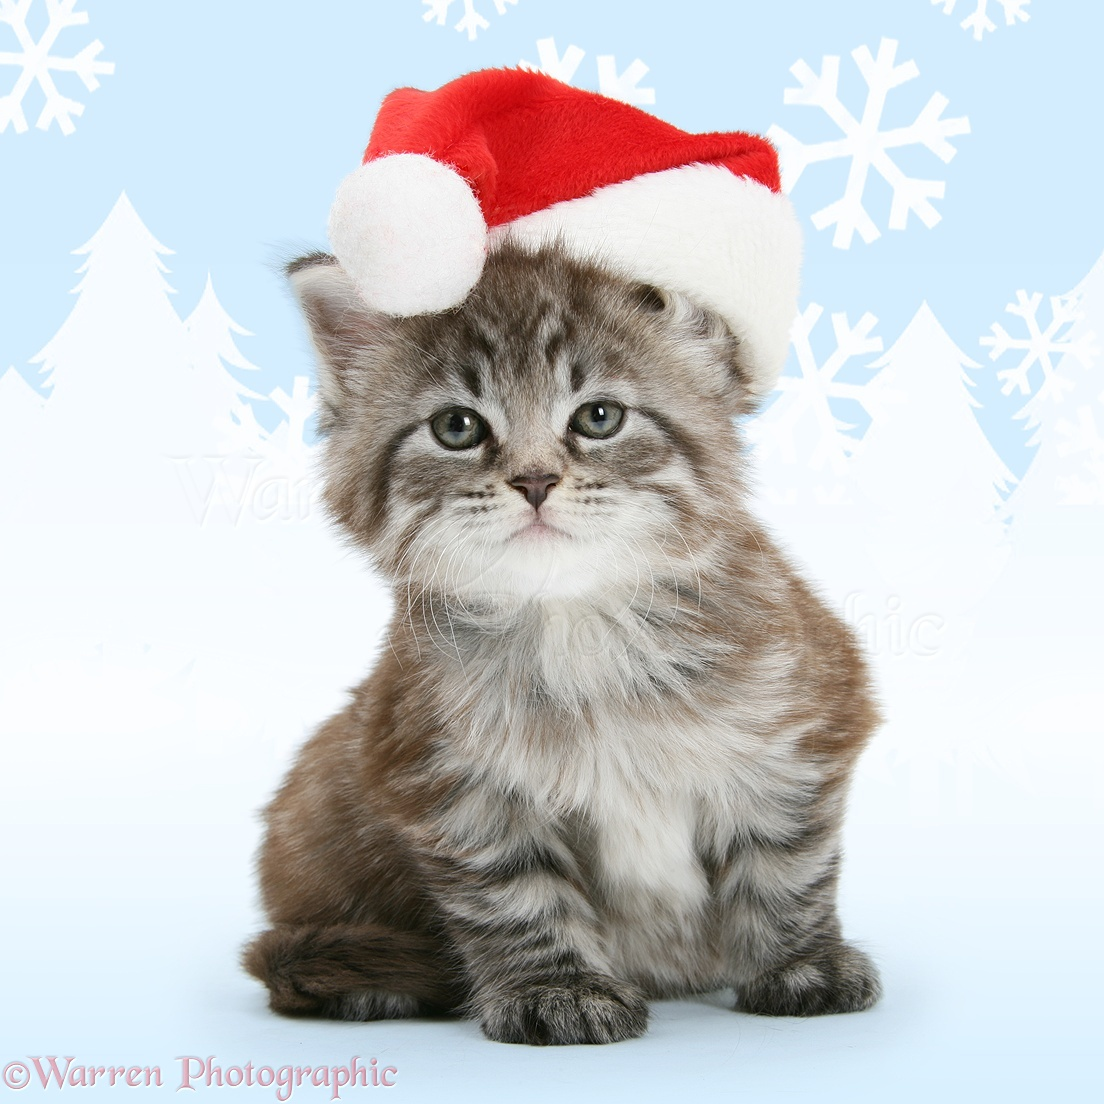 Kittens Wearing Santa Hats Kitten Wearing a Santa Hat